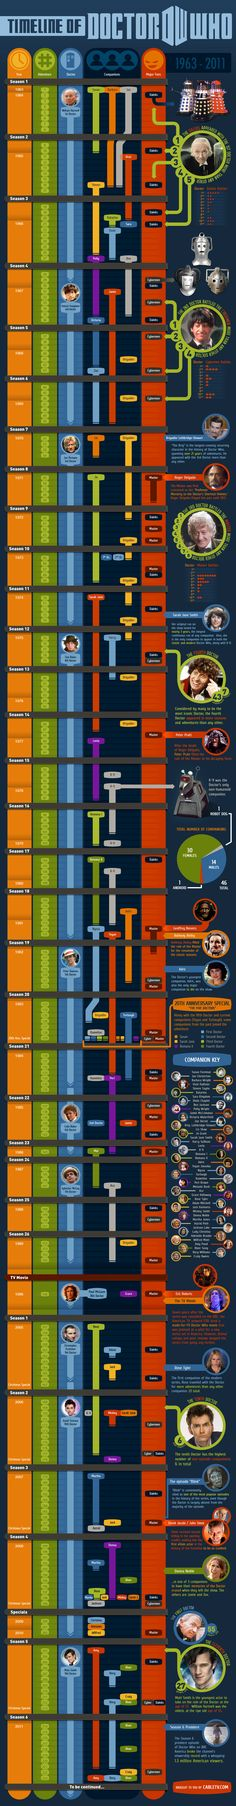 Doctor Who timeline!  This is just so awesome!! =D